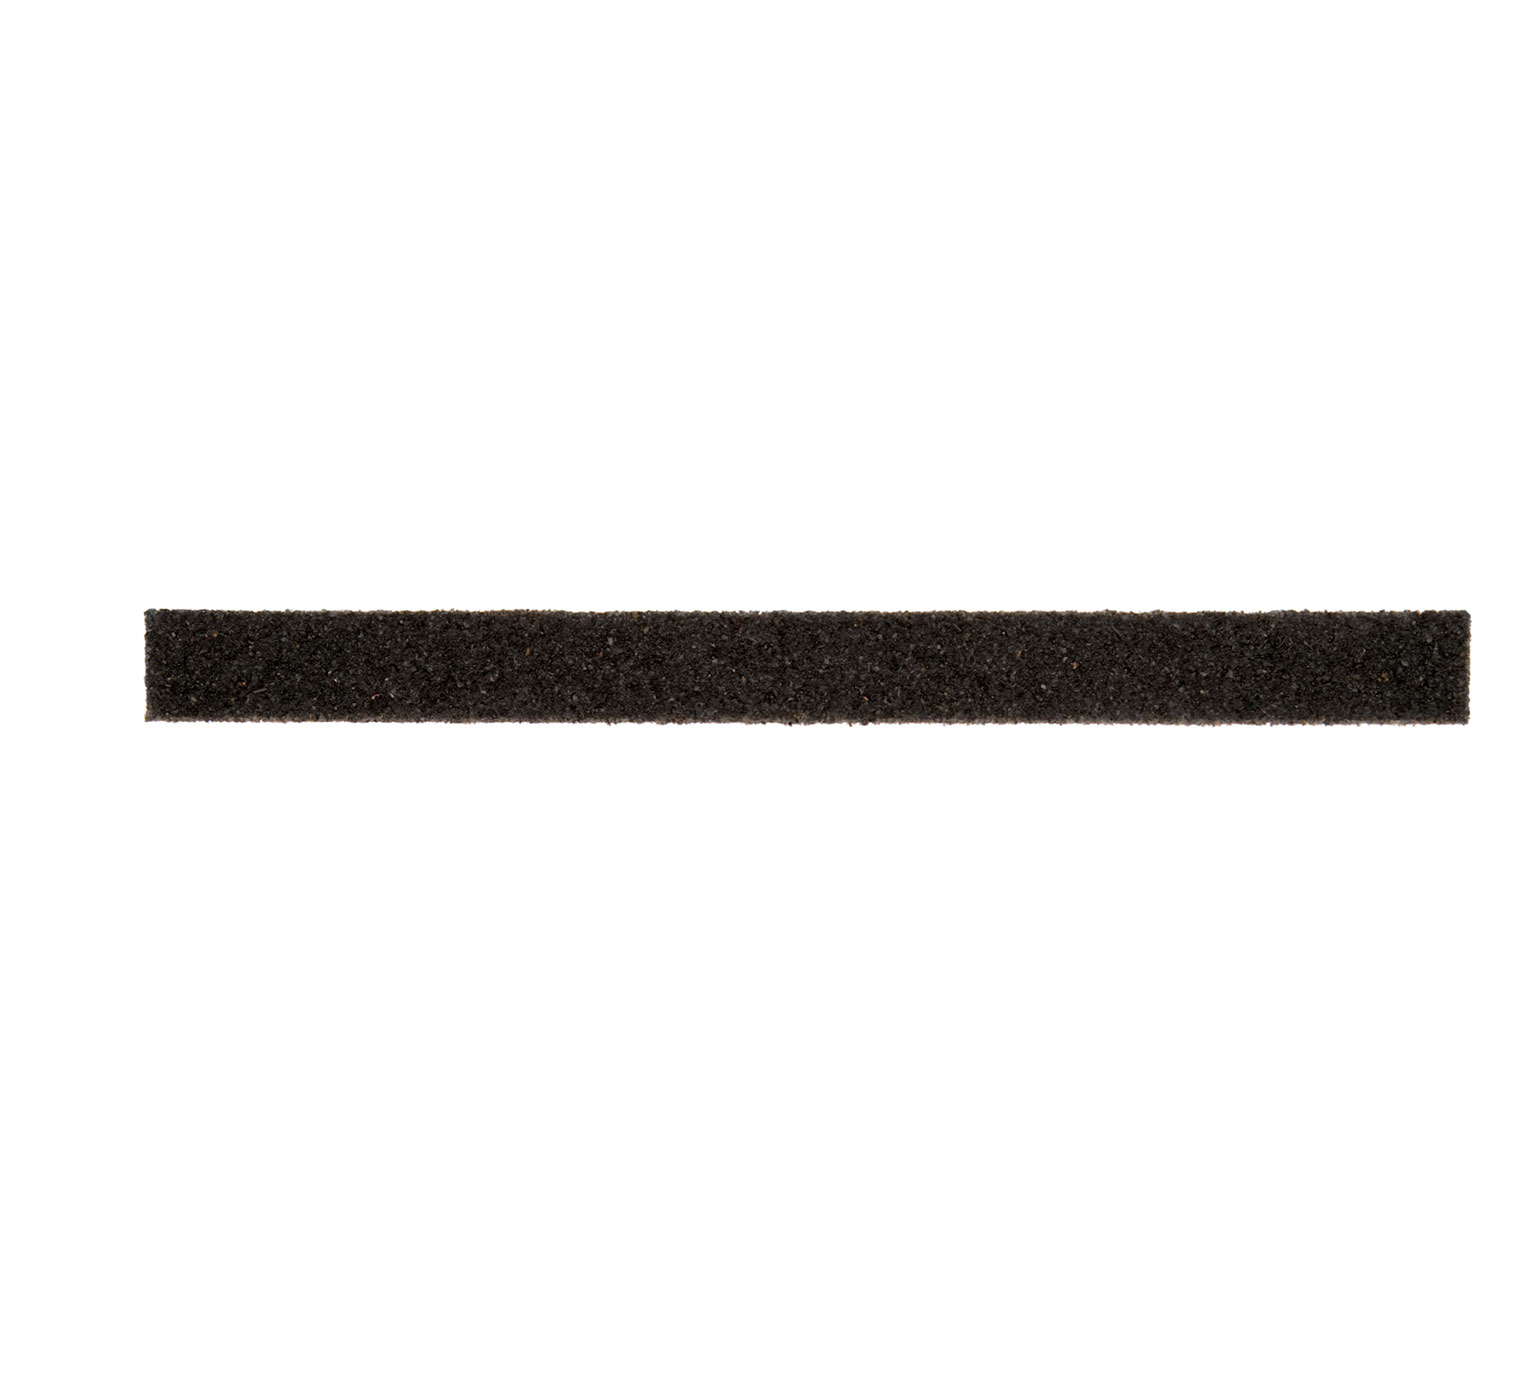 03495 Flextred Anti-Slip Non-Slip Strip - 0.5 x 6 in alt 1